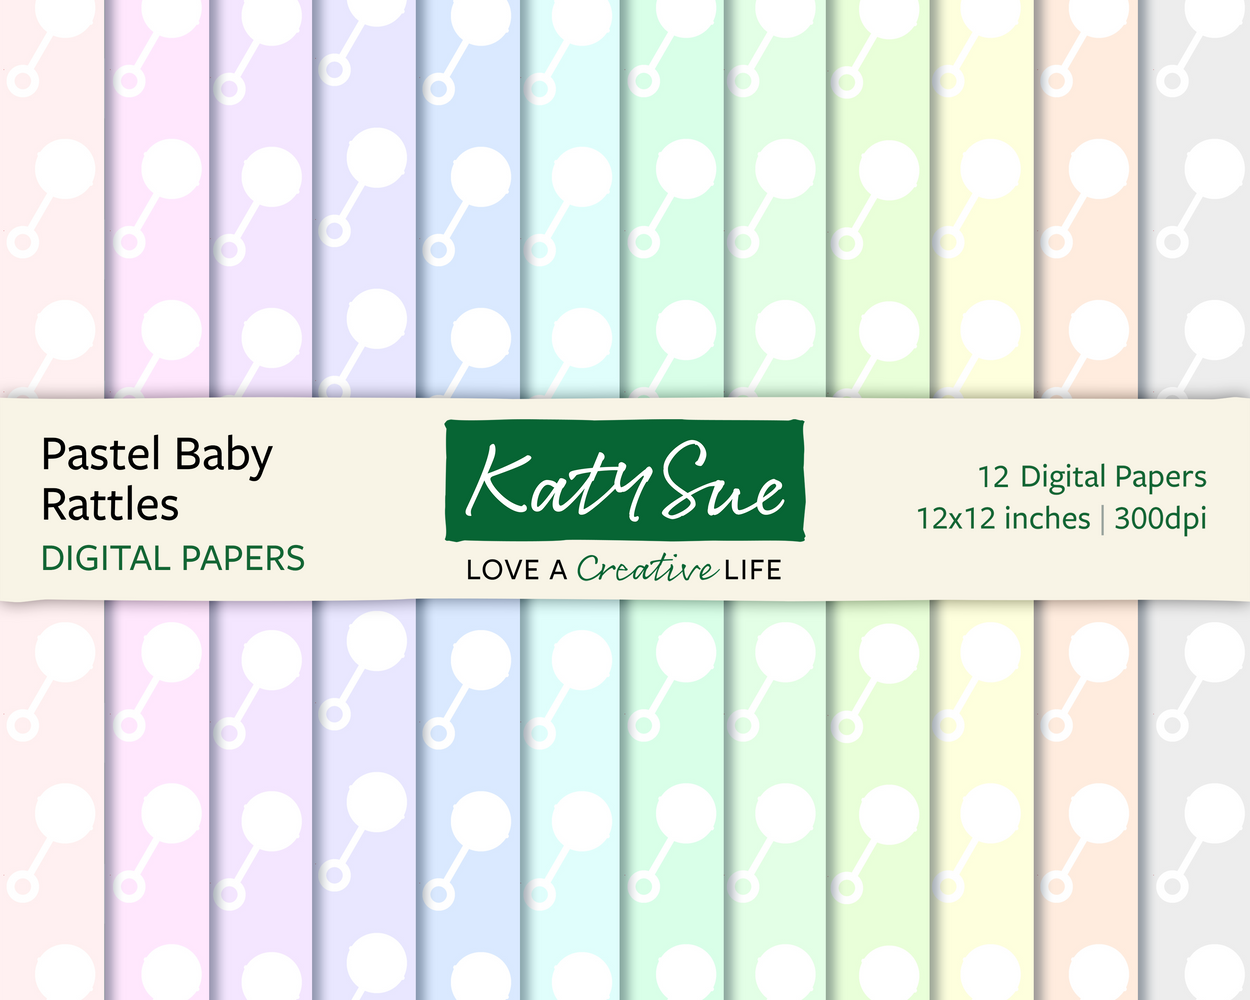 Pastel Baby Rattles | 12x12 Digital Papers